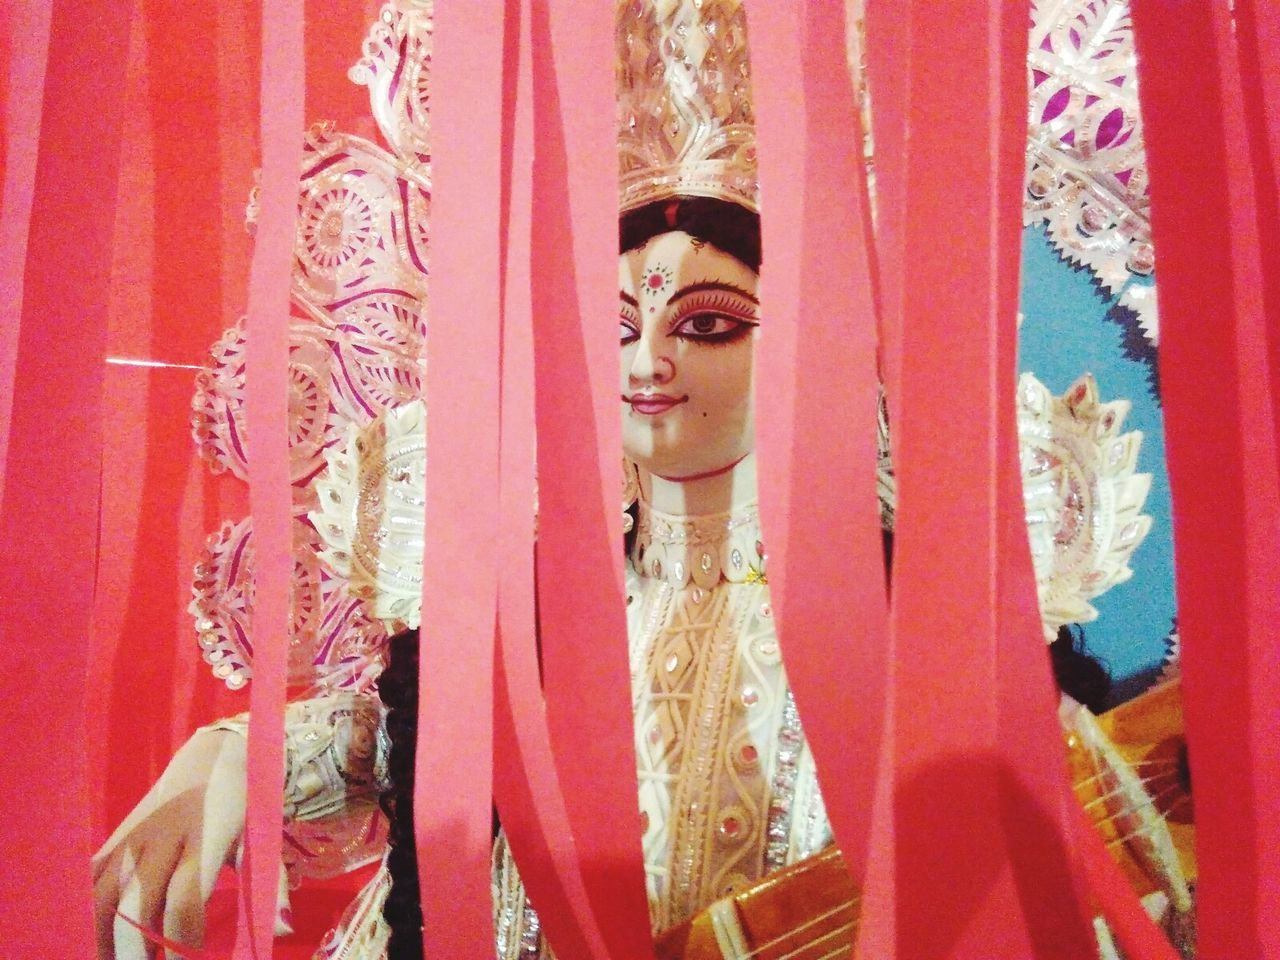 Veiling to be unveiled, Ma saraswati, Goddess of Knowledge and education First Eyeem Photo